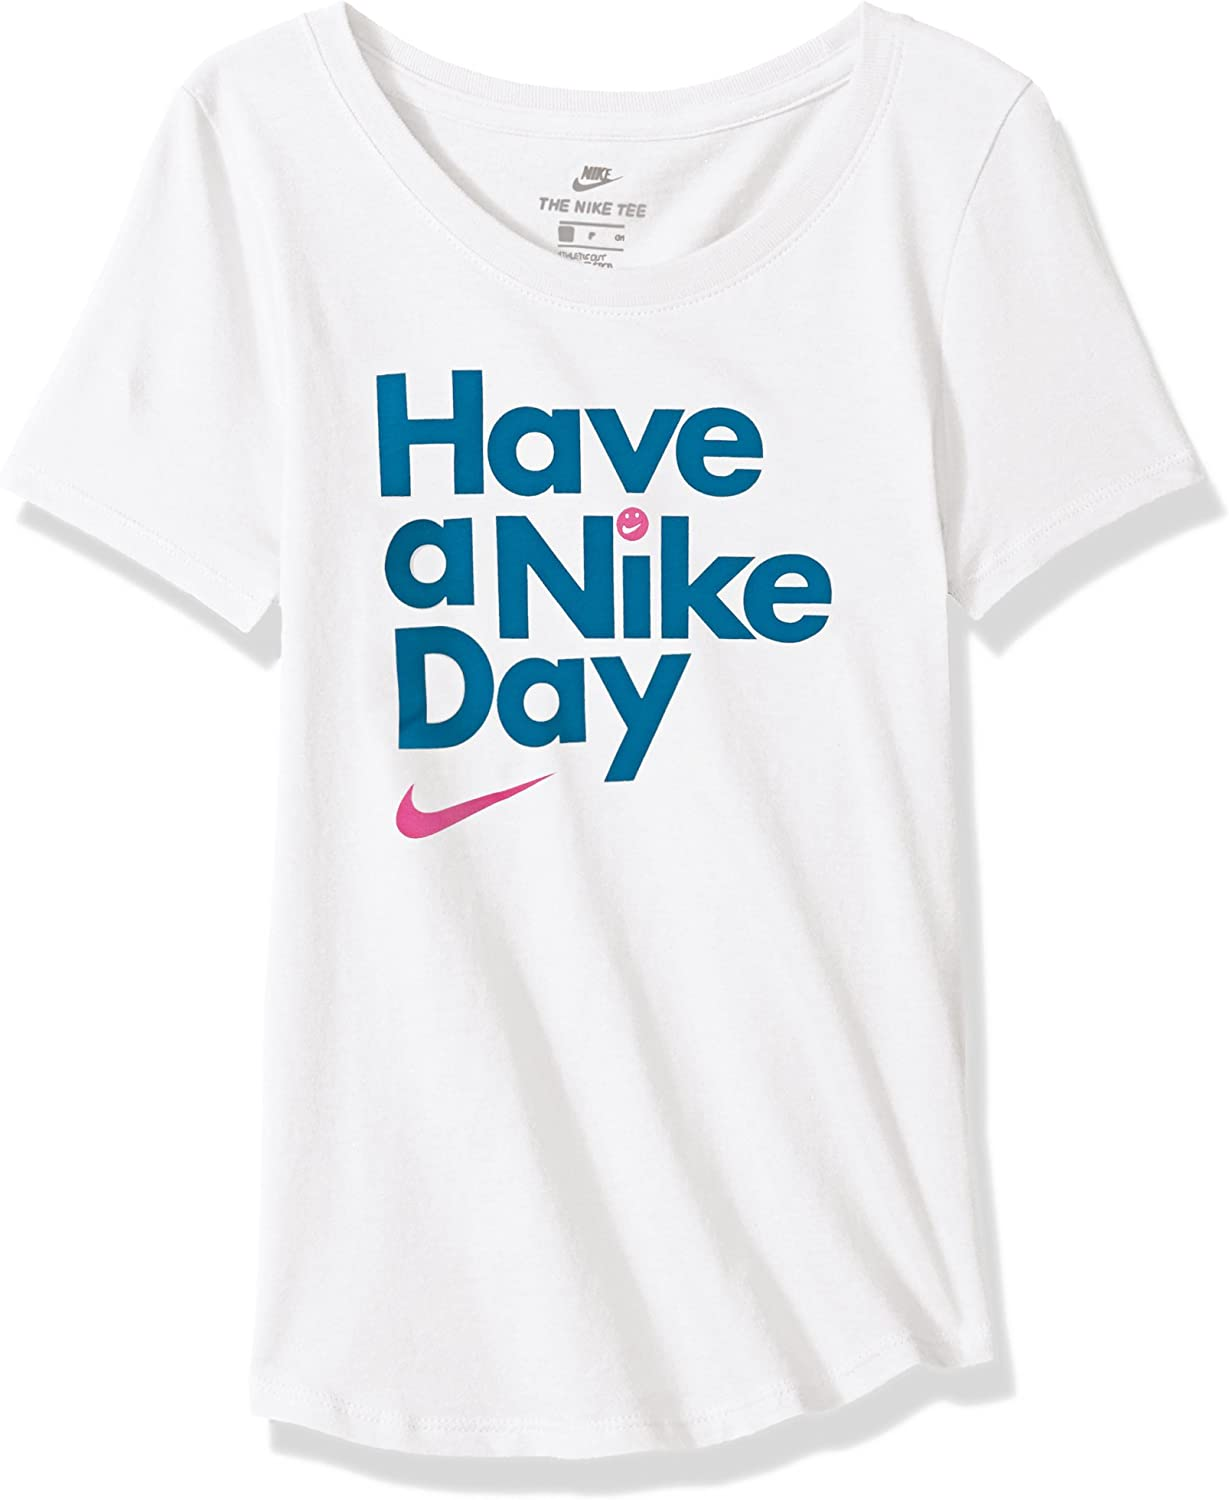 NIKE Sportswear Girls' Have a Day Nike Tee Ranking TOP16 Scoop Max 52% OFF